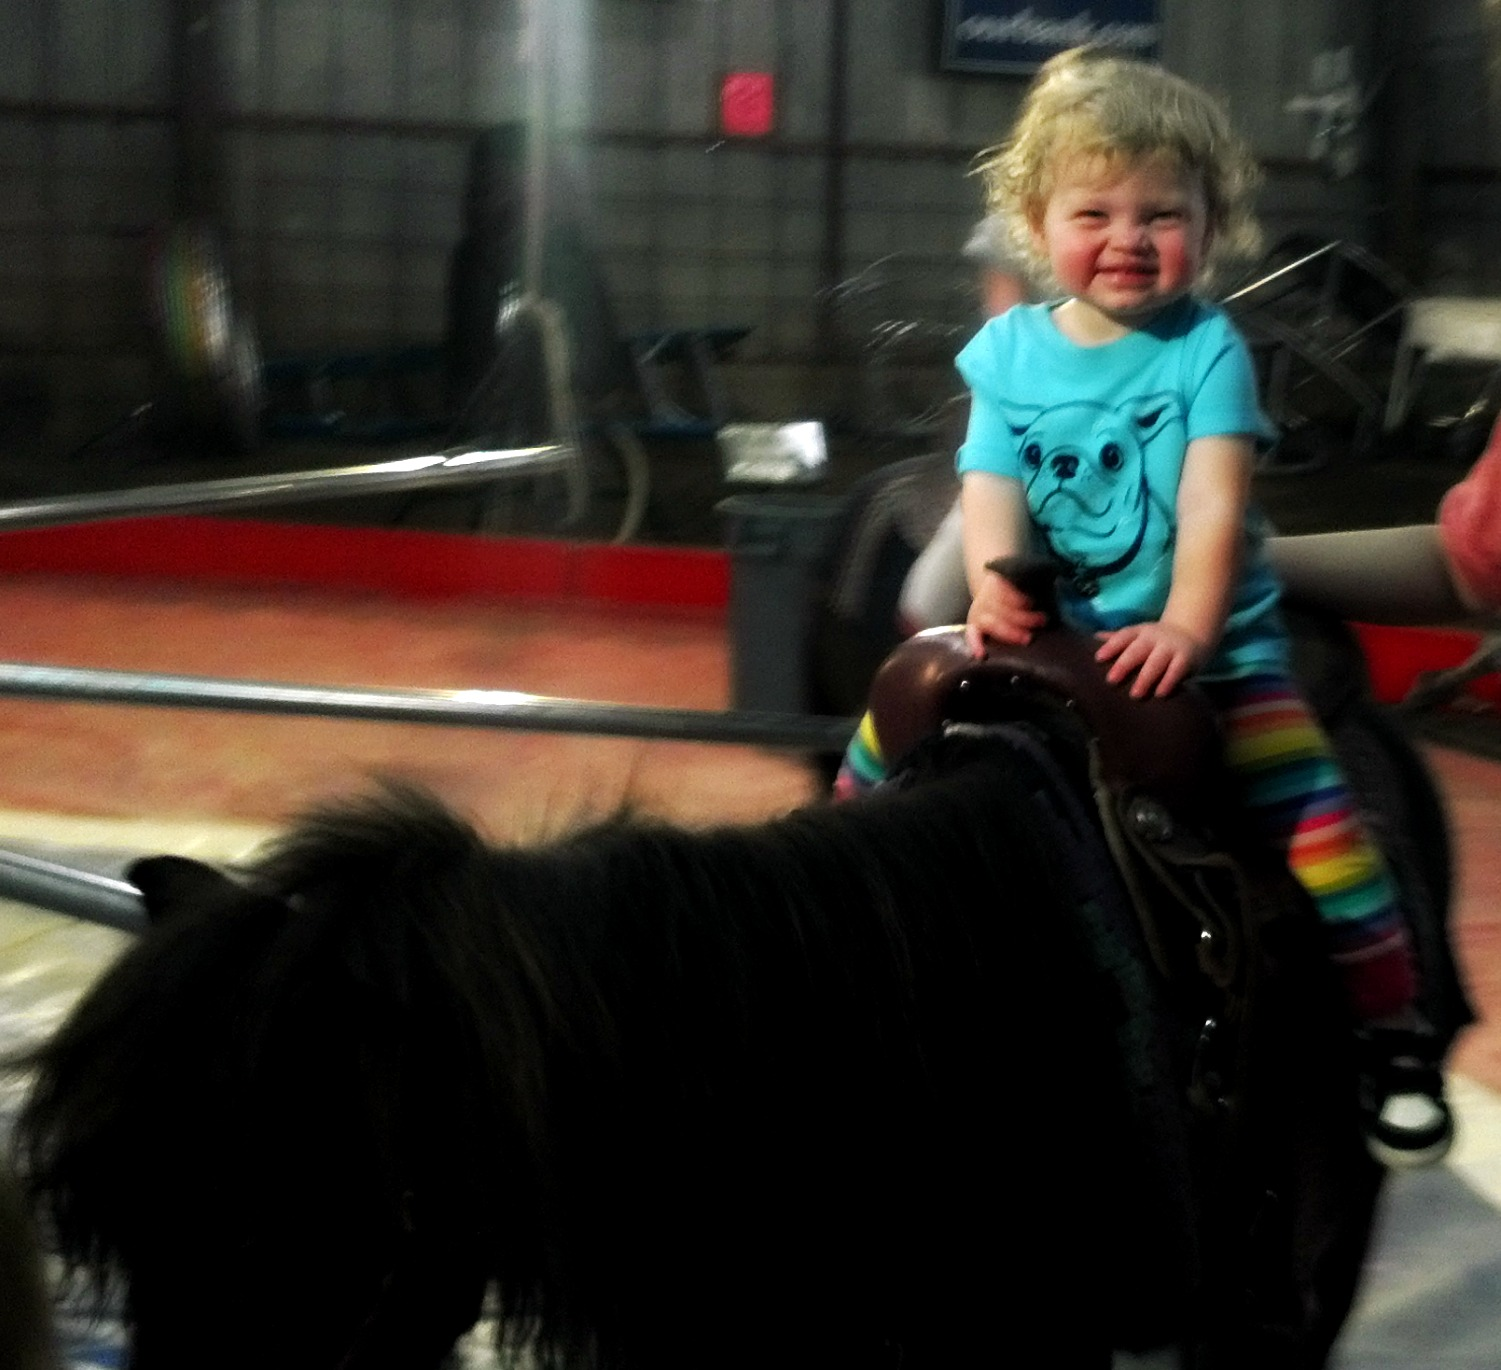 riding-pony-at-circus | tolmema